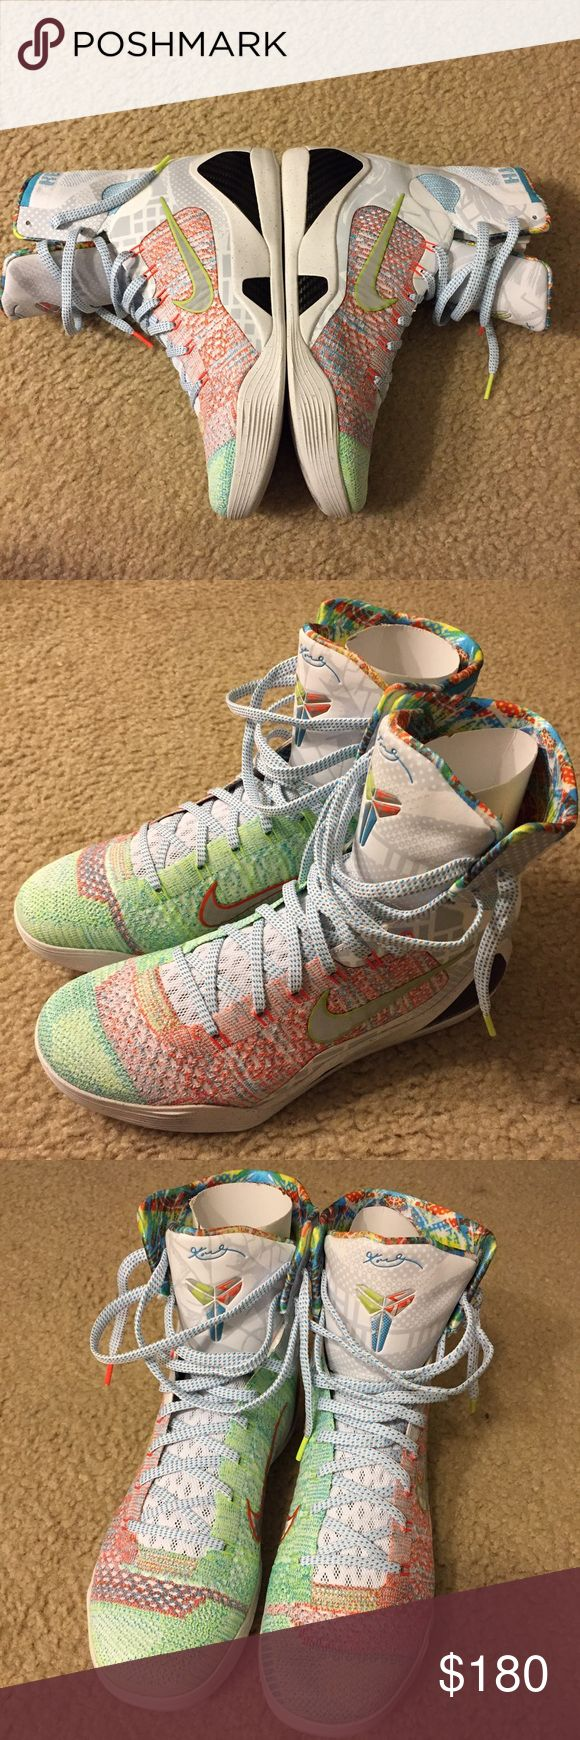 Kobe 9 what the Kobe premium Kobe shoes. WTK Kobe 9 what the Kobe. 99.8% new only wear for 2 times!!! Almost qual brand new. No broke for bottom and surface at all!! Size us9/eu42.5. The pictures you see is the thing you will get. Nike Shoes Sneakers